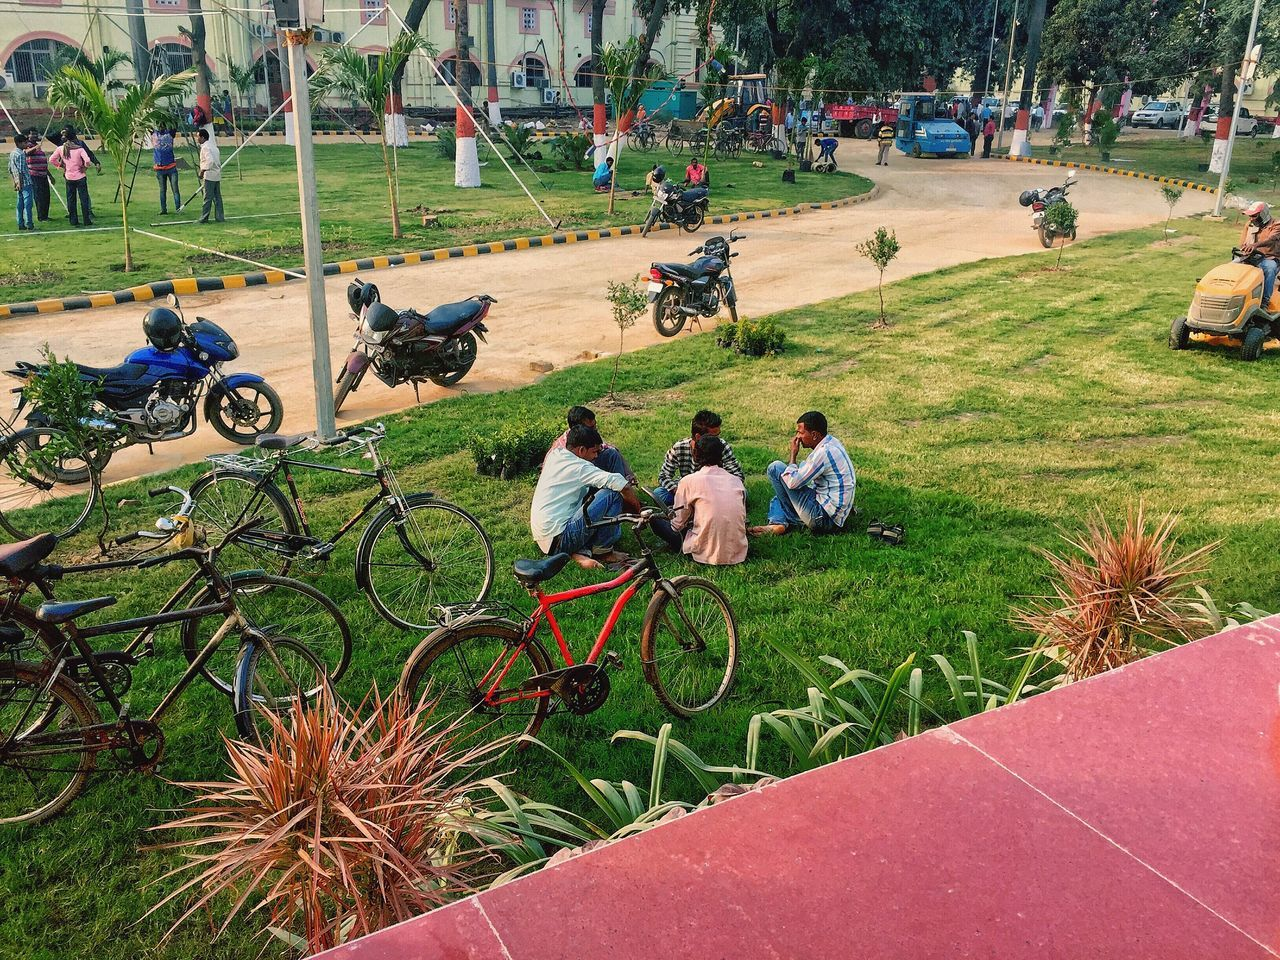 When It's expected to be a Very Busy Day,Few still finds time to Sit & chat around! Bicycle Real People Leisure Activity Grass Outdoors Day People Land Vehicle Mode Of Transport My Unique Style My View Iphone 6 Connection Special👌shot Leisure My Year My View